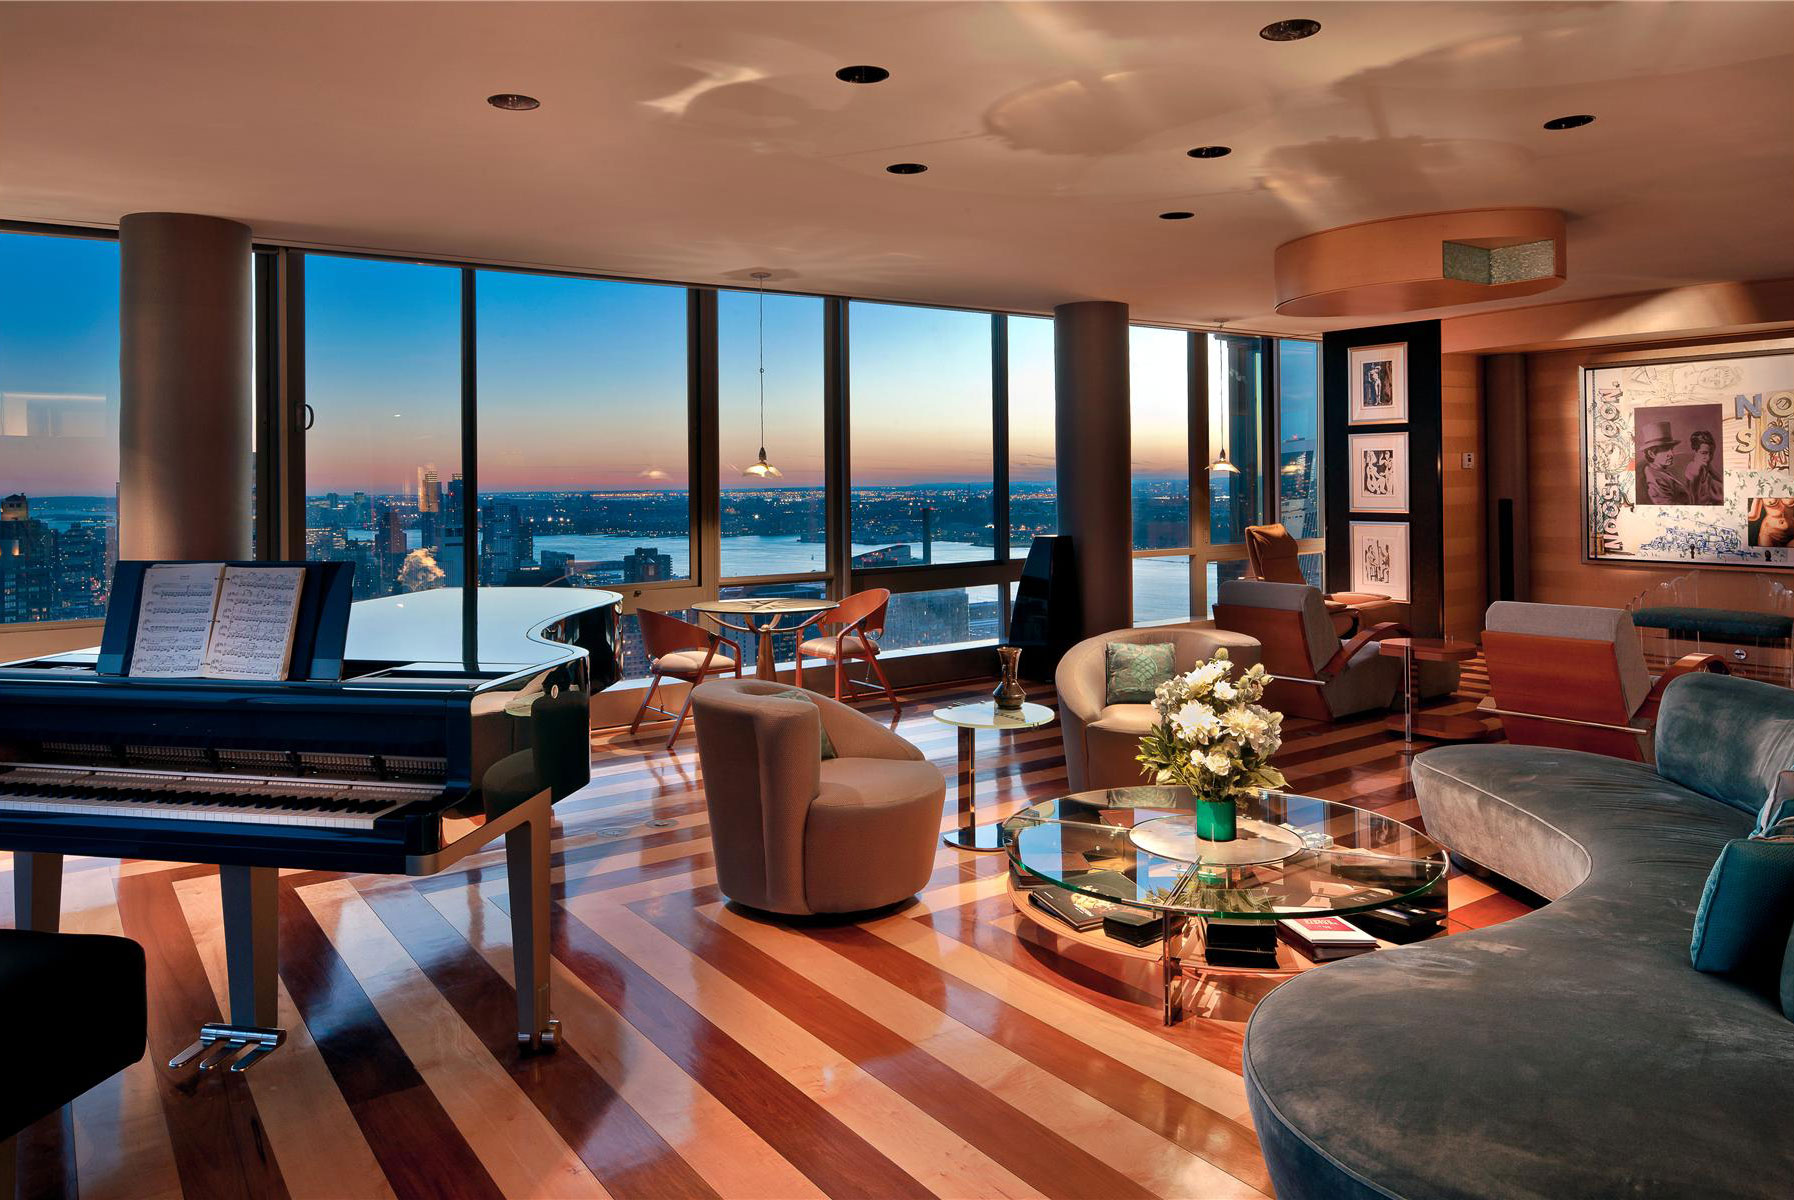 The gartner penthouse for sale in new york city for New york city apartments for sale